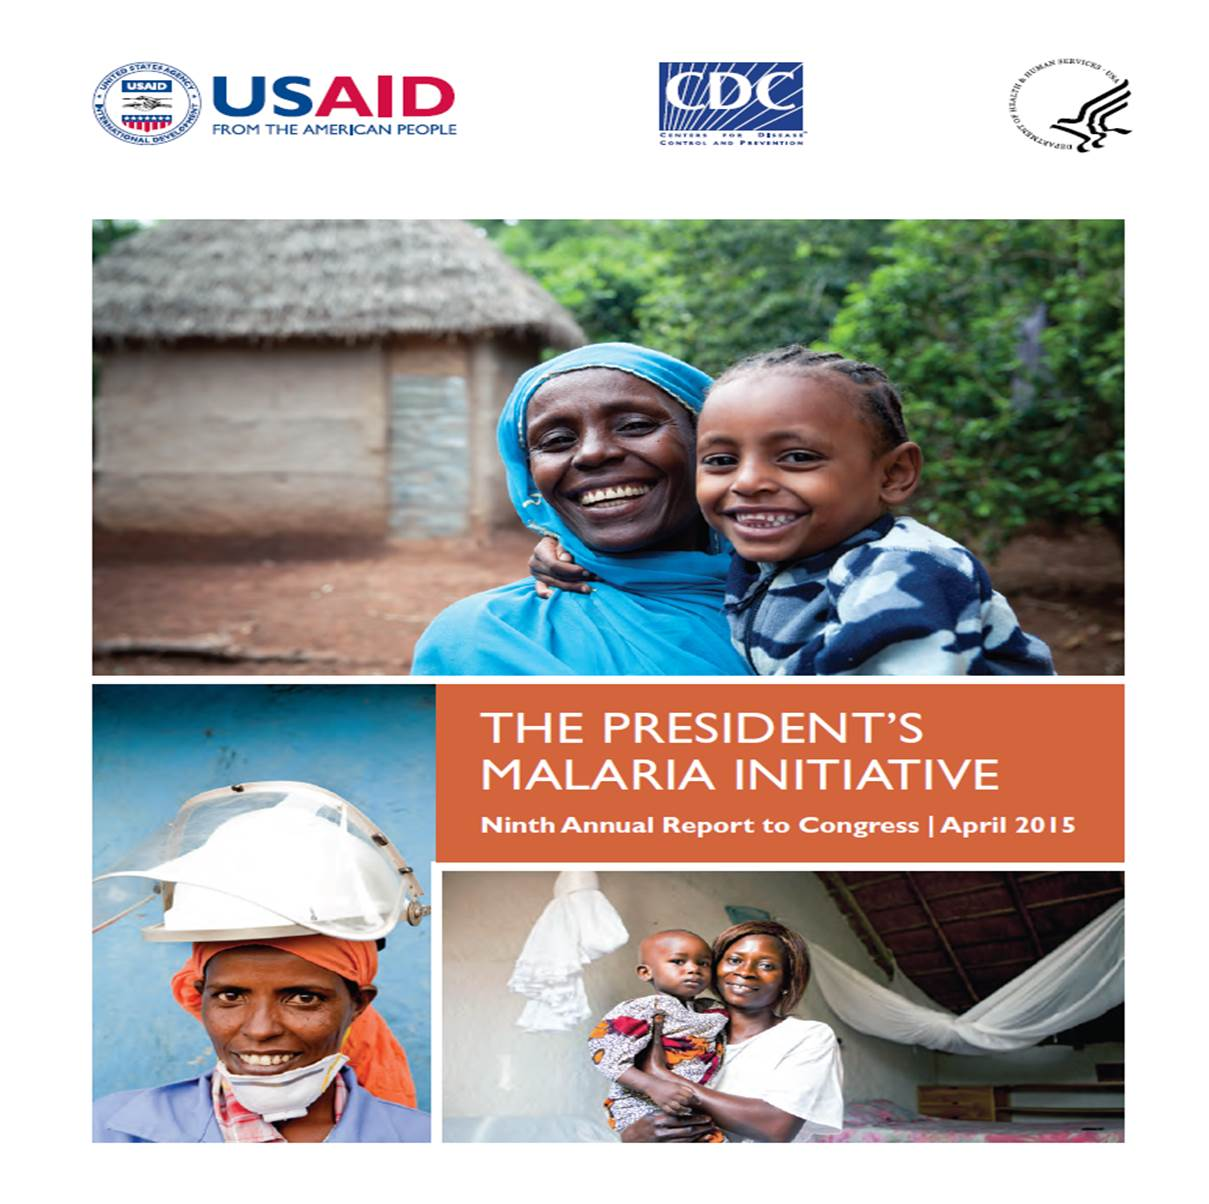 President's Malaria Initiative: Ninth Annual Report to Congress